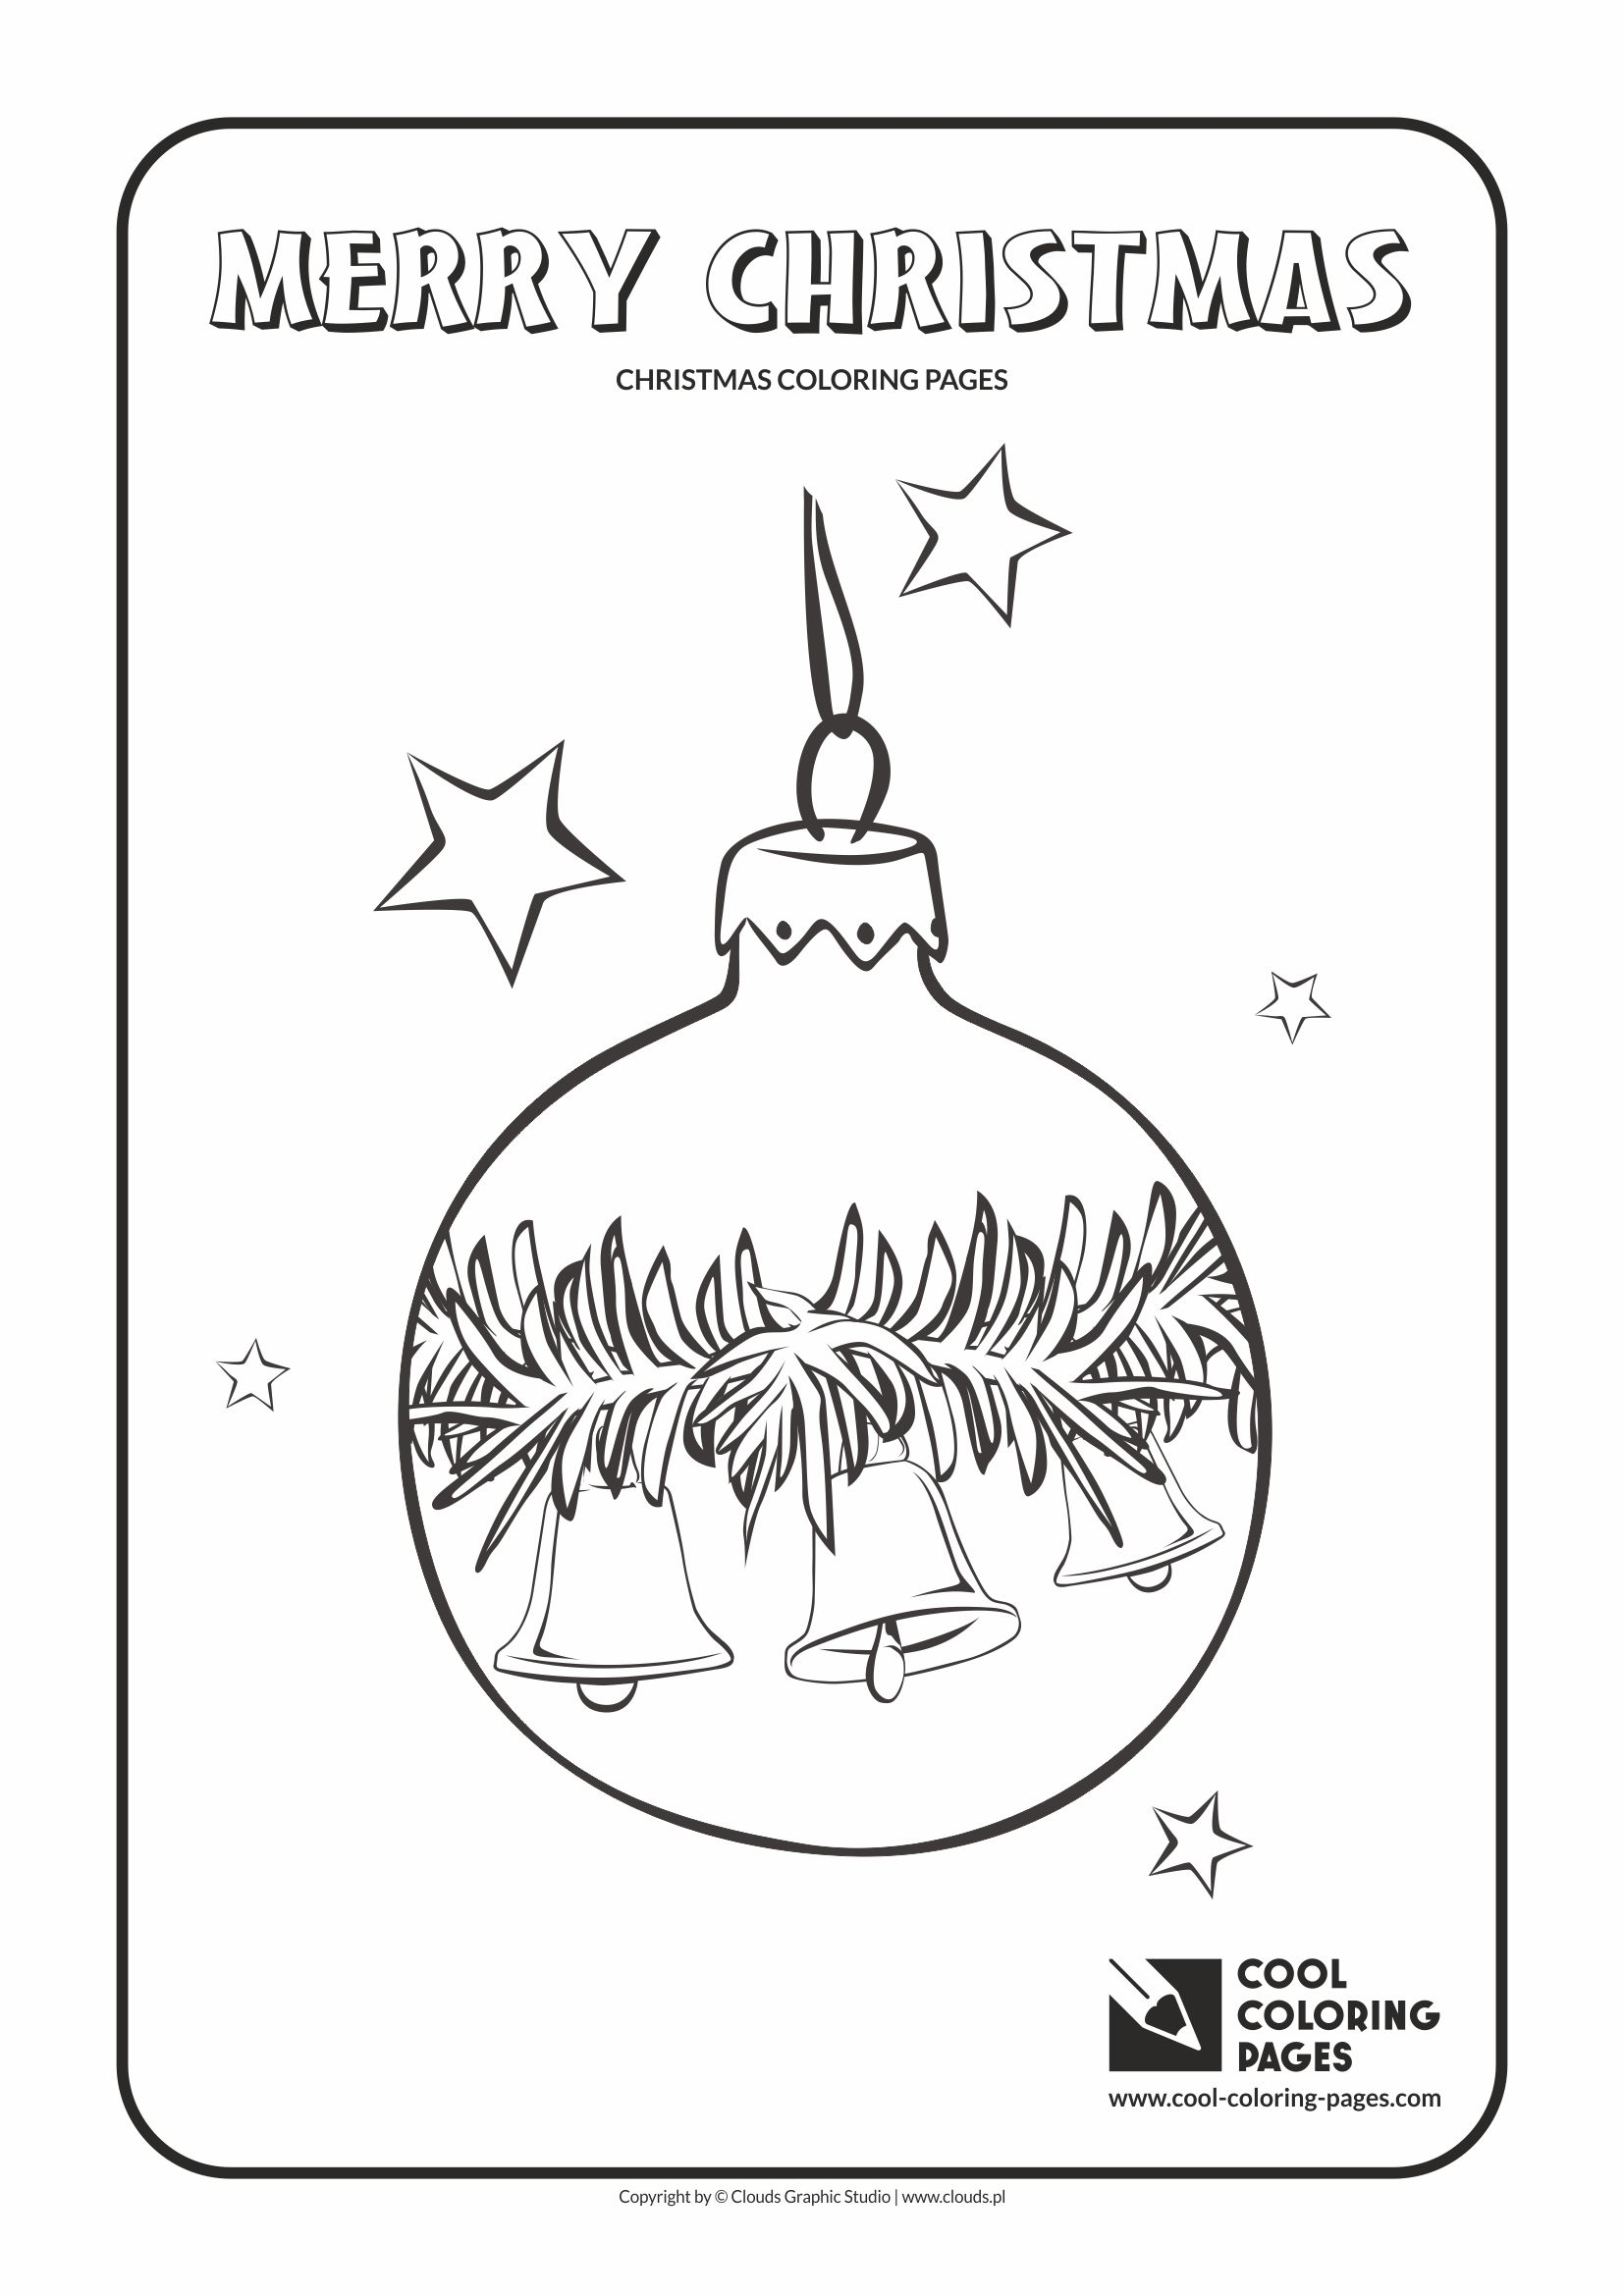 Cool Coloring Pages - Holidays / Christmas glass ball no 4 / Coloring page with Christmas glass ball no 4